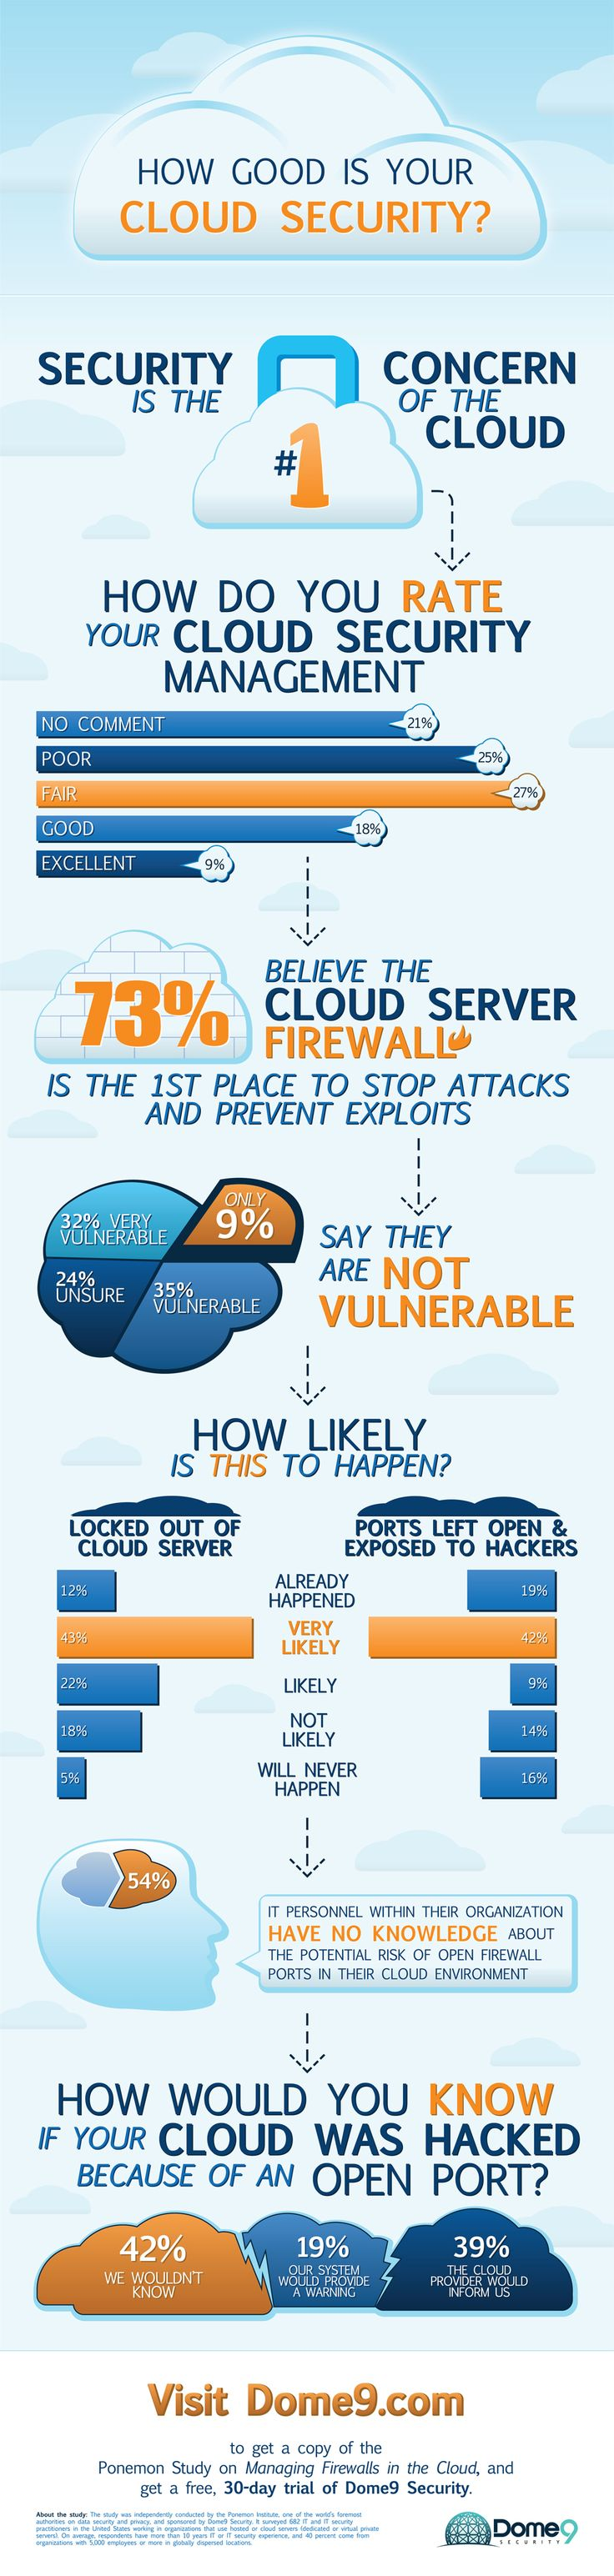 Cloud Security Infographic: How Good is Your #Cloud Security?